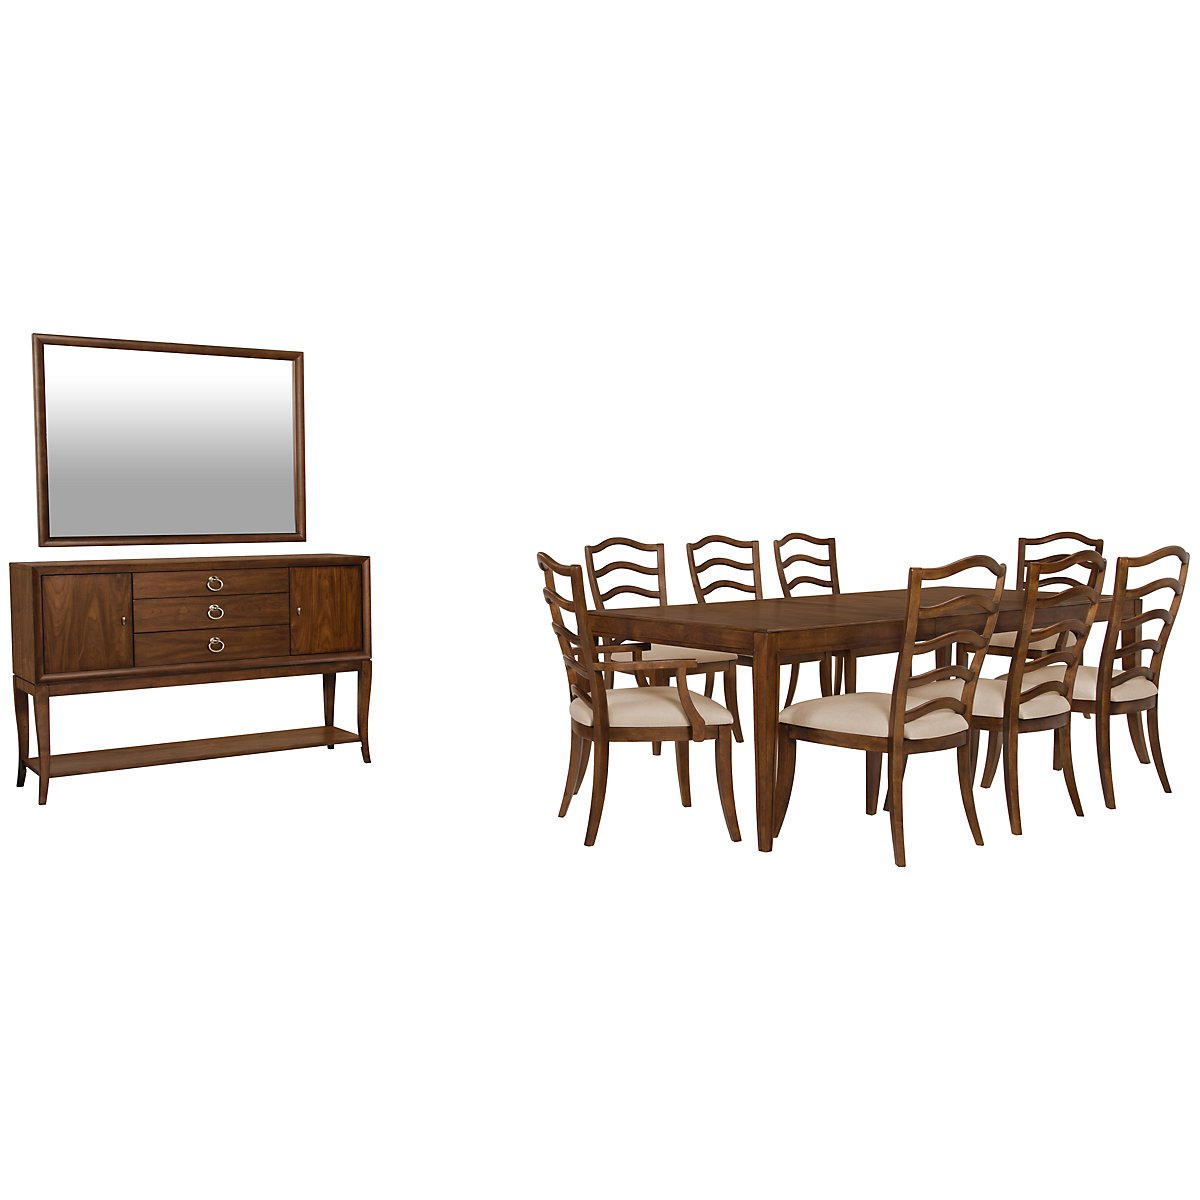 Savoy Mid Tone Rectangular Dining Room